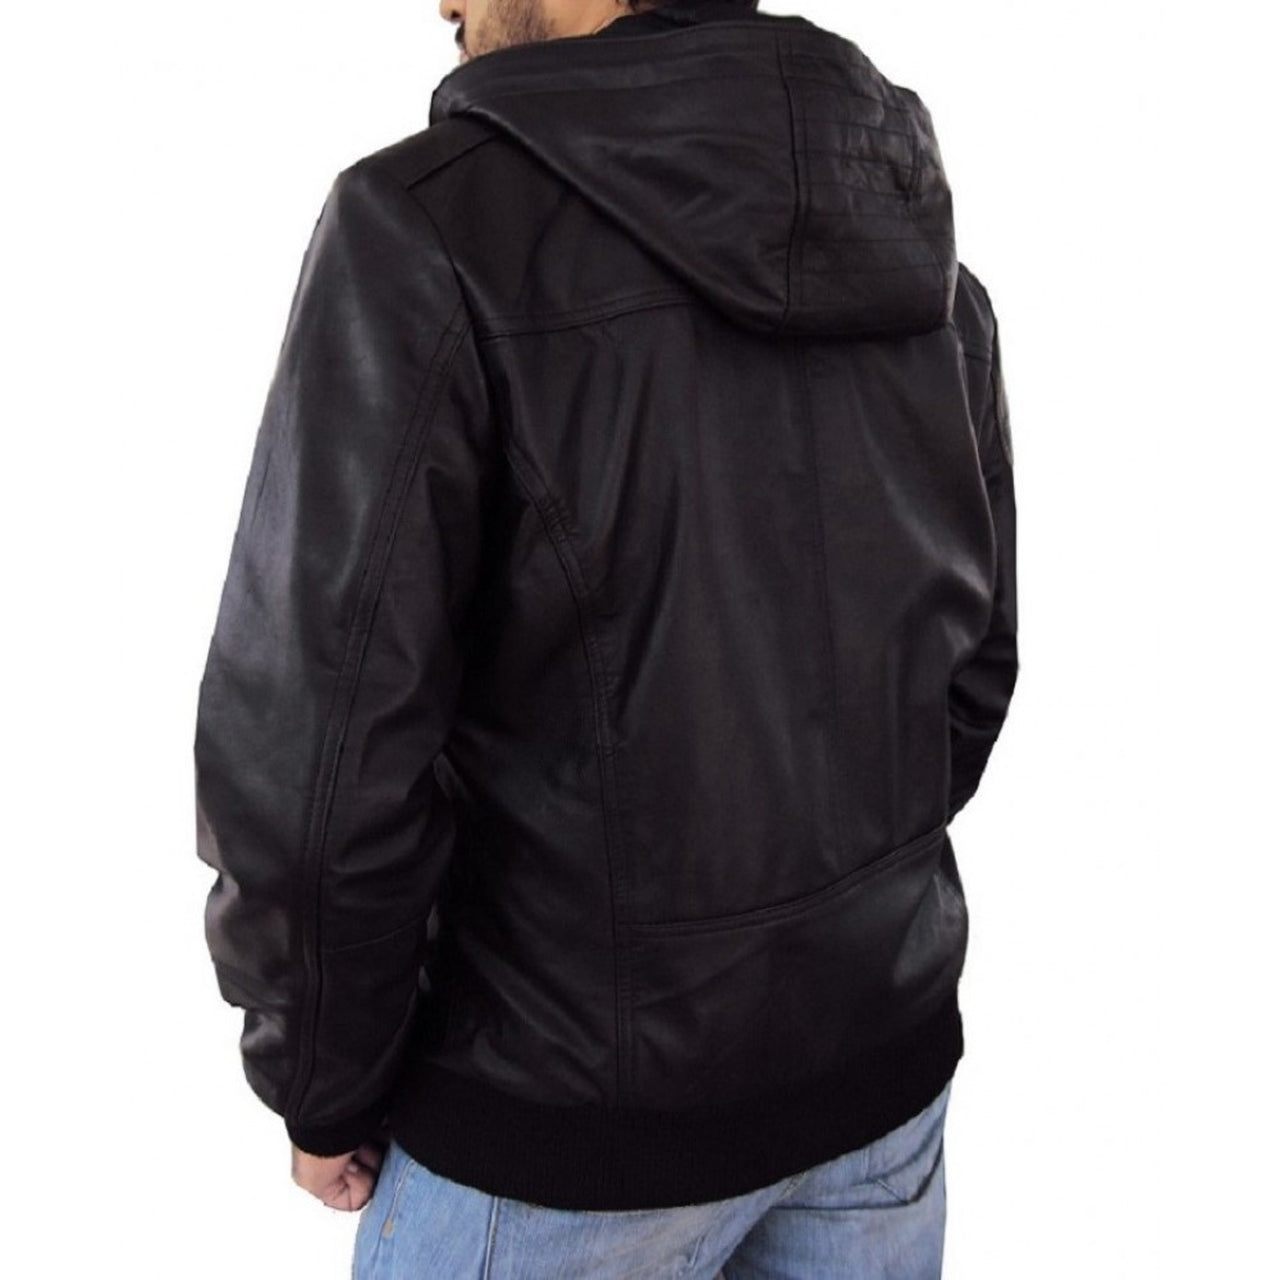 Solo Bomber Jacket With Fixed Hoodie in Black Color - Leather Jacket - Leather Jacket